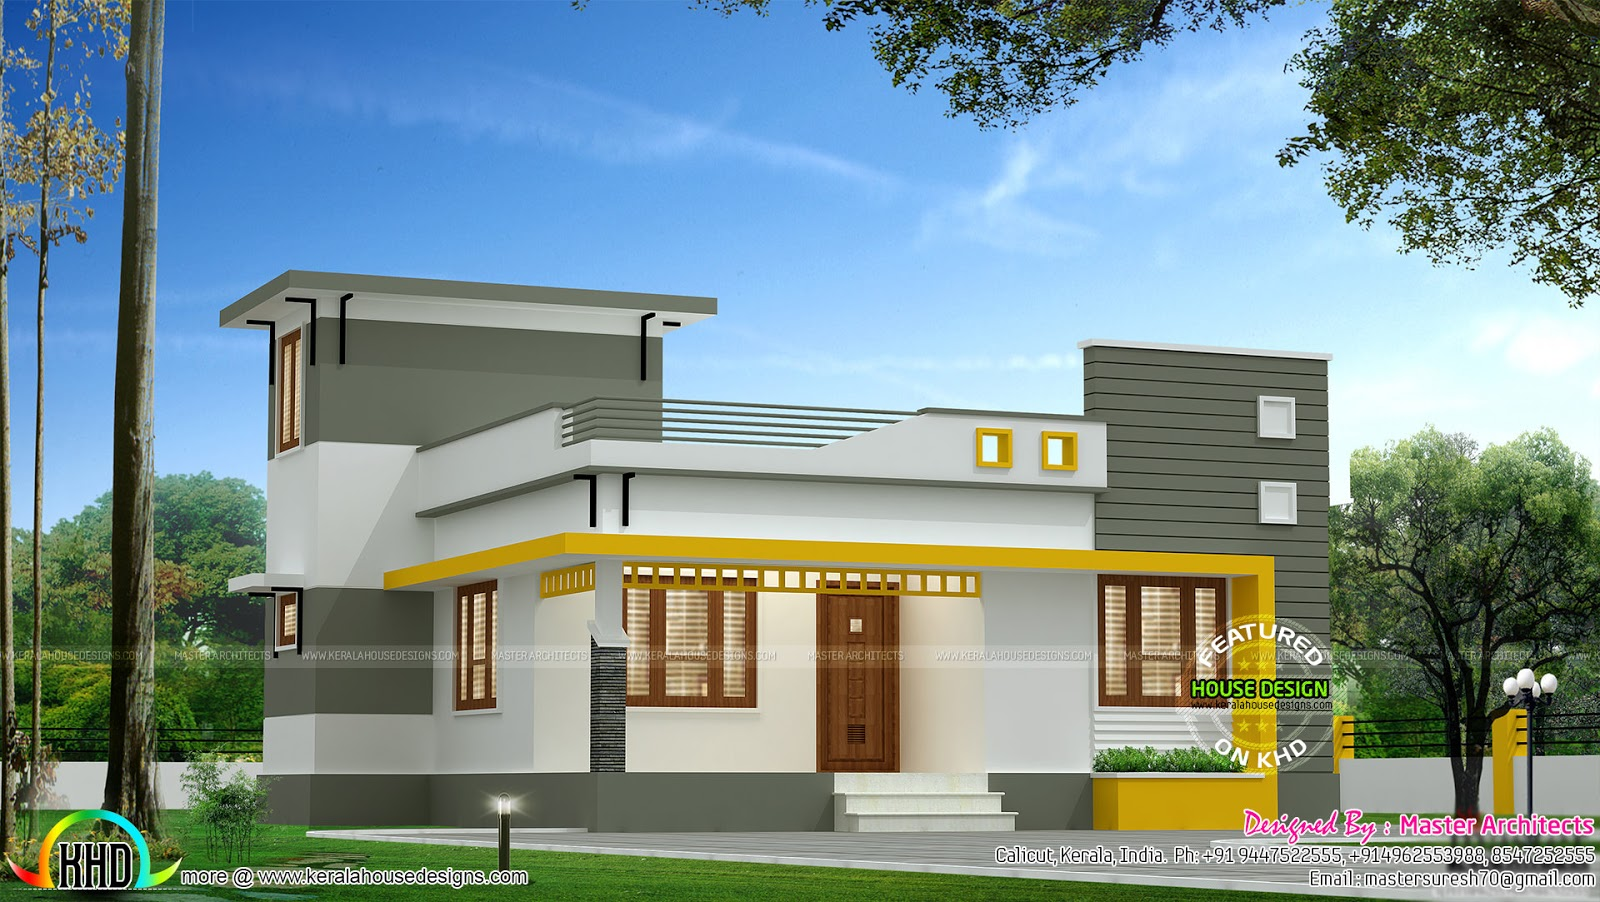 3 bedroom single floor modern architecture home kerala for Single floor house designs tamilnadu